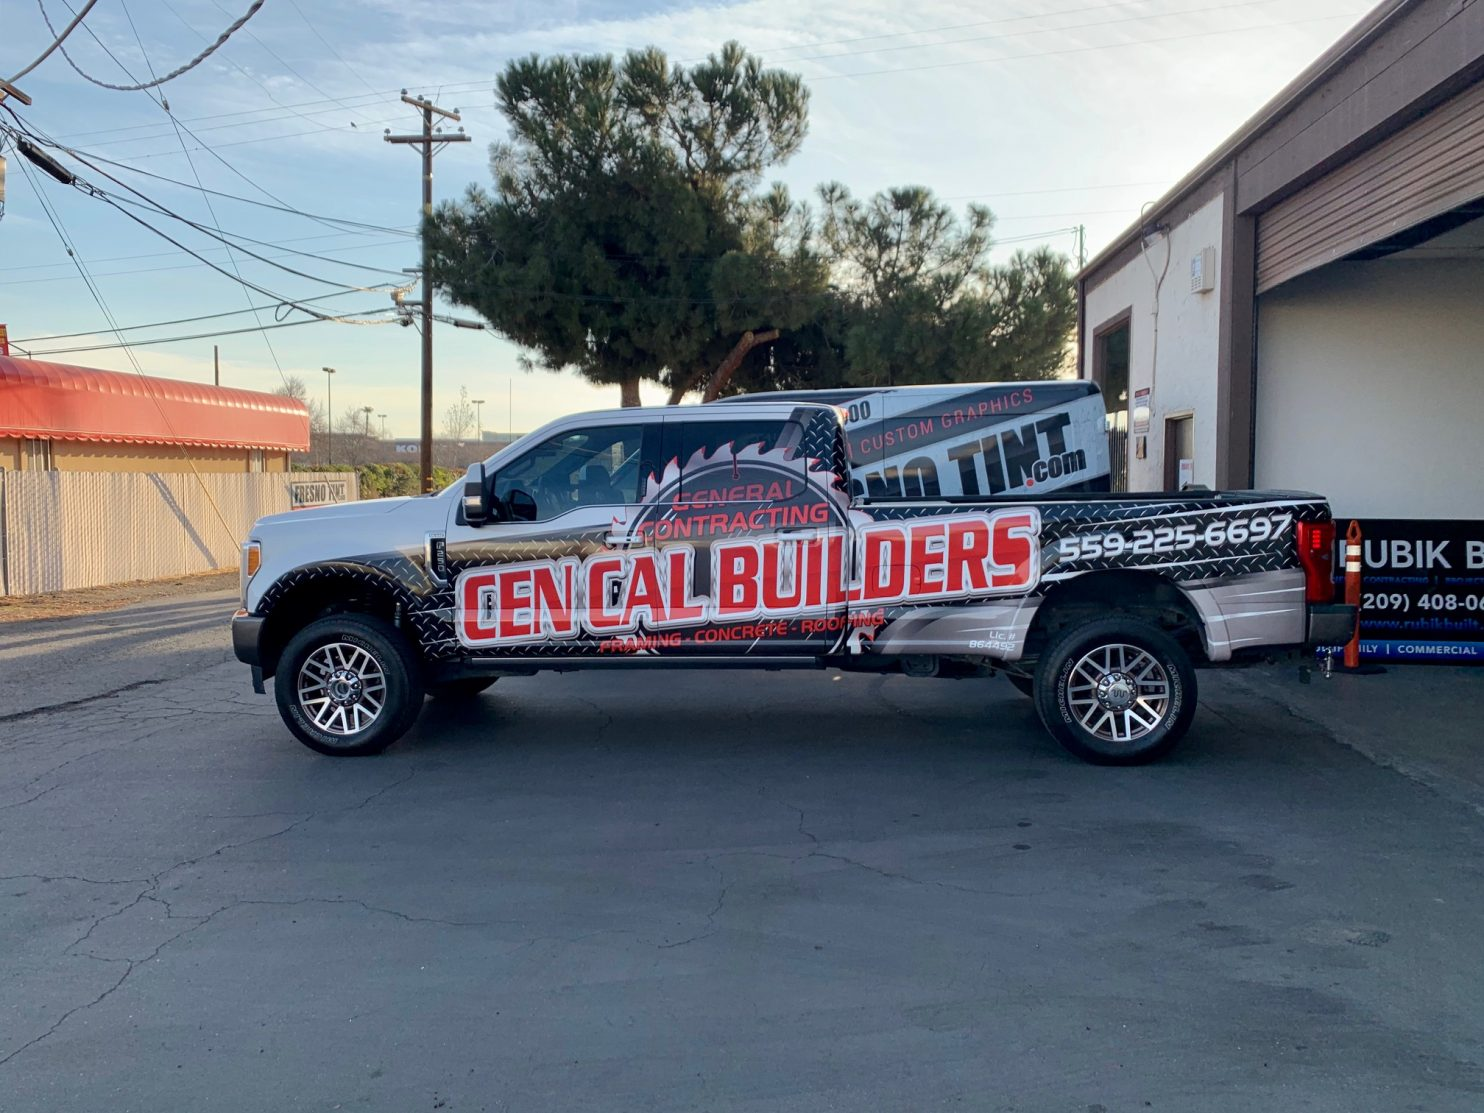 Fresno Tint Helps Cen Cal Builders With Vehicle Wraps and Signage - Vehicle Wraps and Graphics in the Fresno, California area